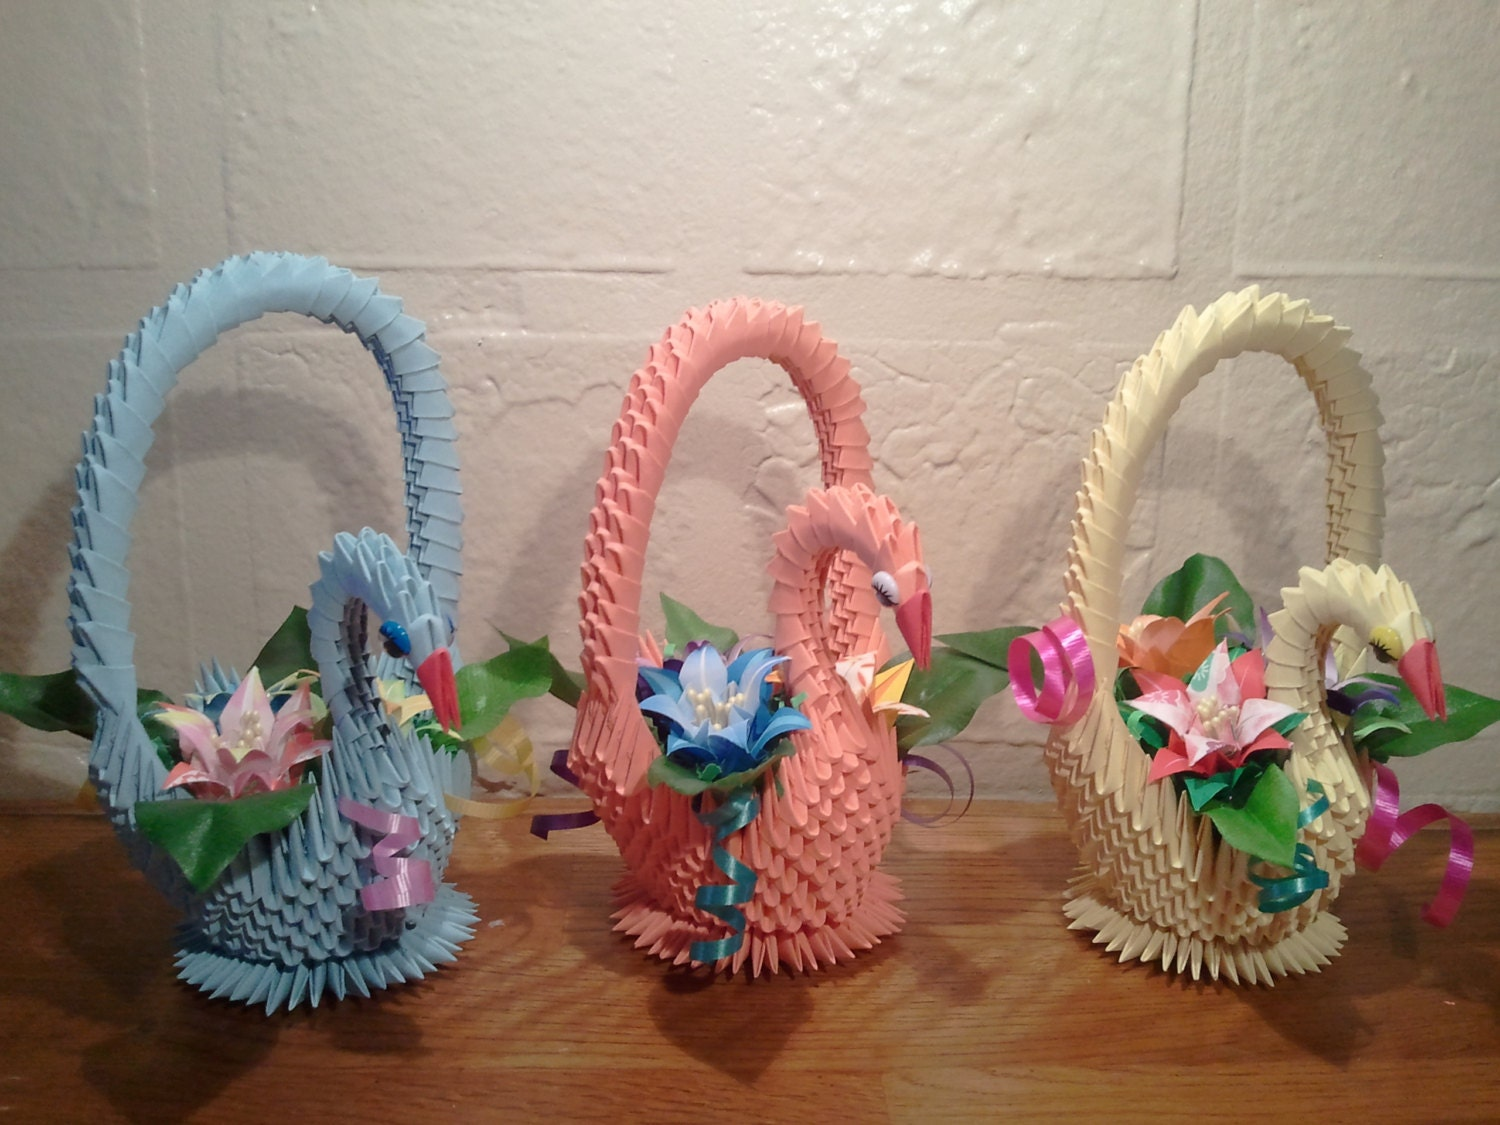 How To Make A Small Flower Basket : D origami swan basket with flowers